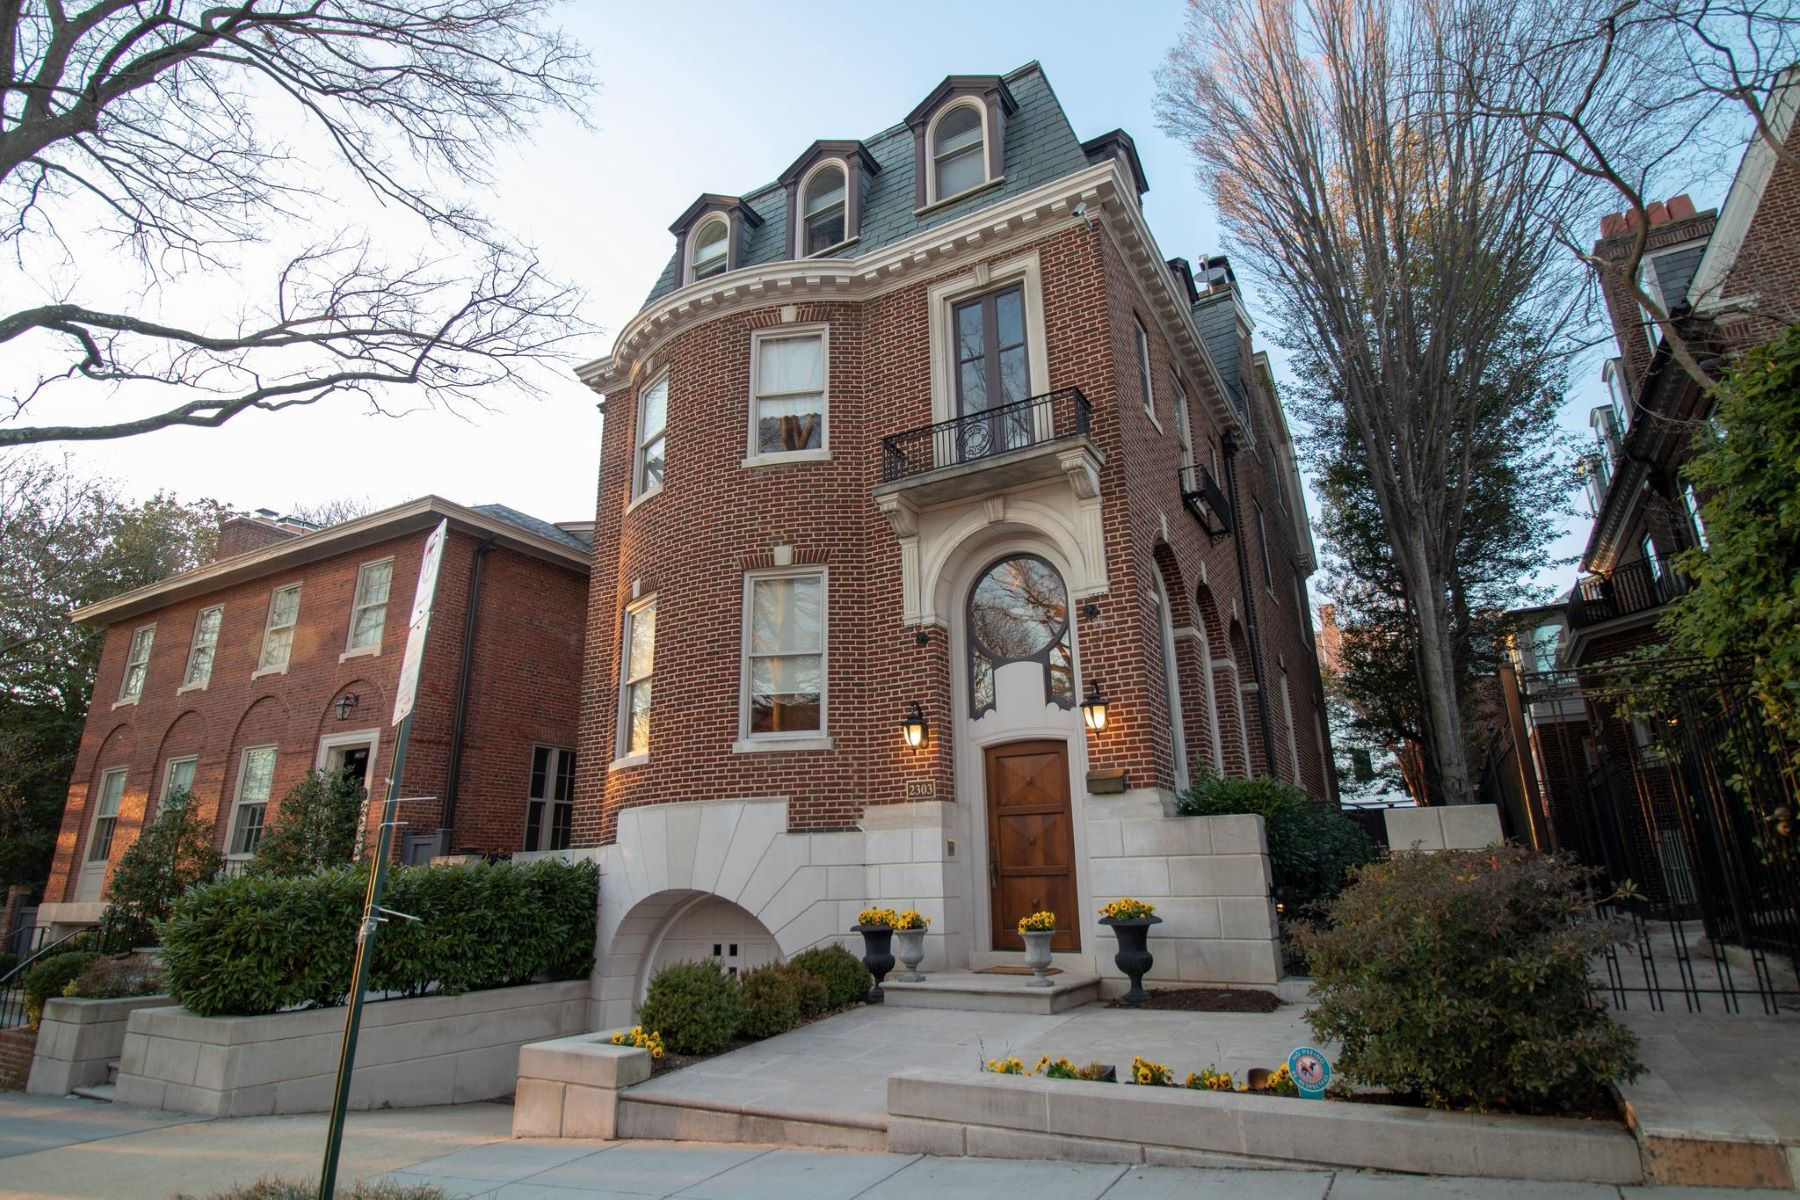 Single Family Home for Sale at 2303 Bancroft Pl NW Washington, District Of Columbia 20008 United States